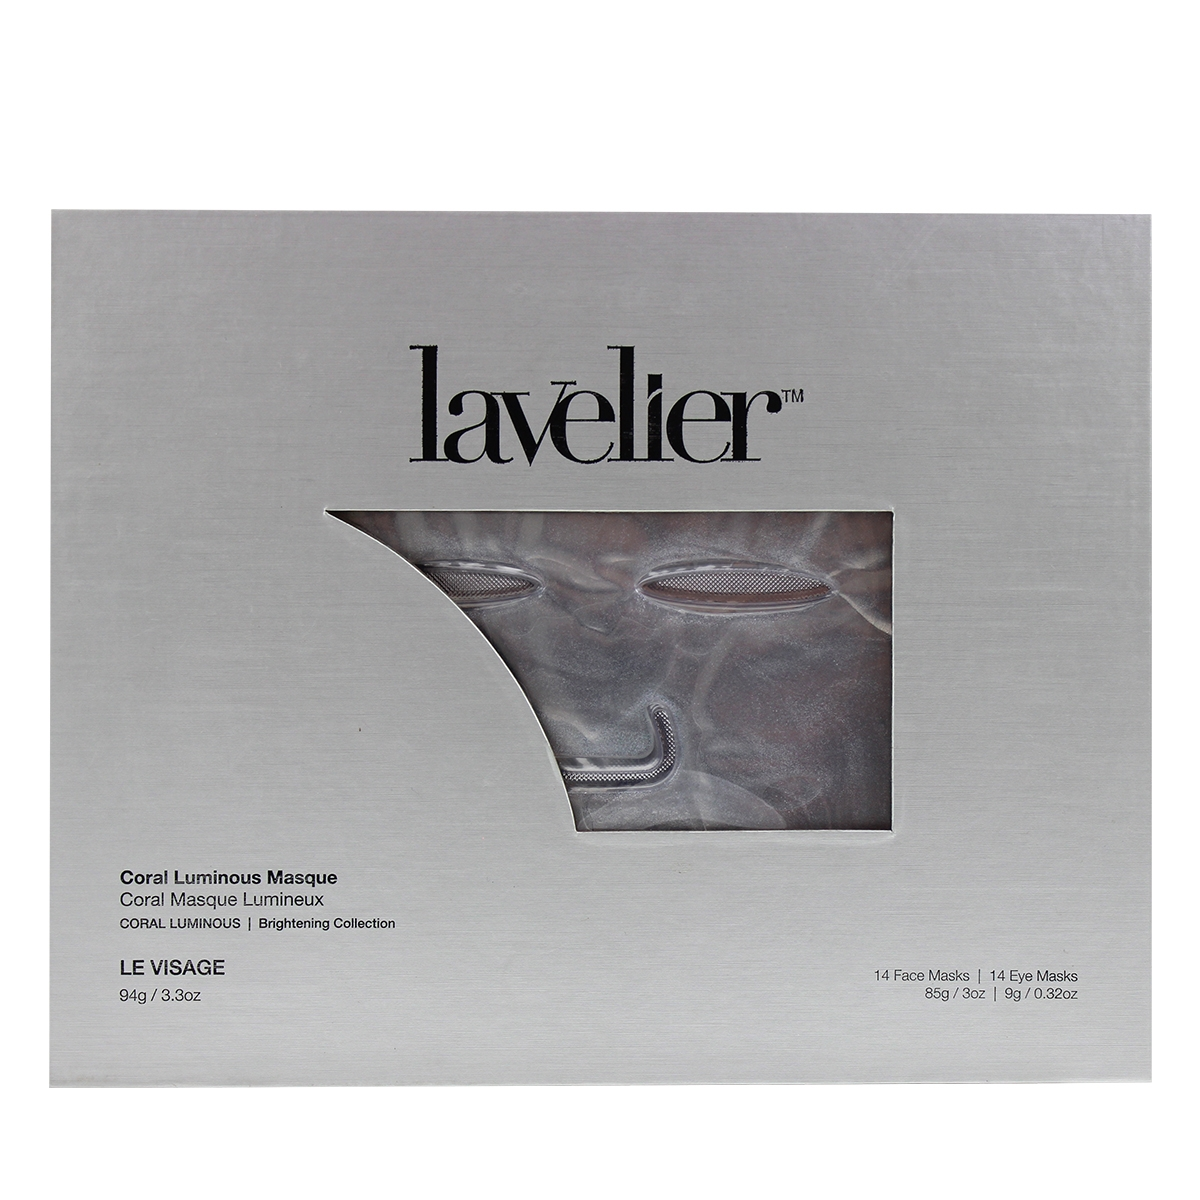 Lavelier Coral Luminous Masque Box Front